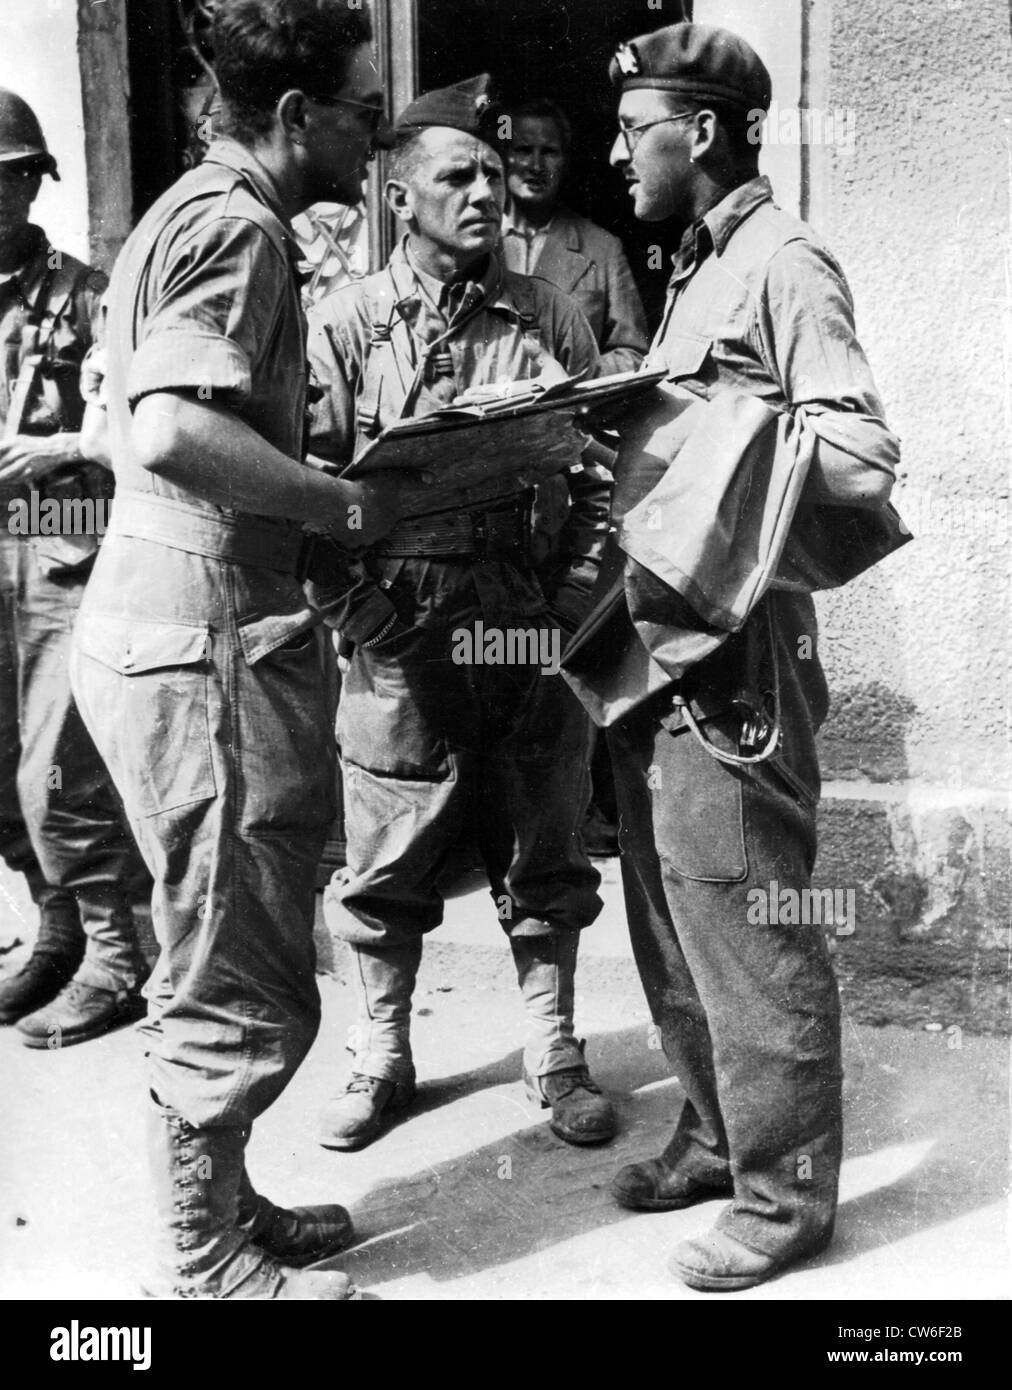 Two French officers talk to a British officer in Ecouche, summer 1944 Stock Photo